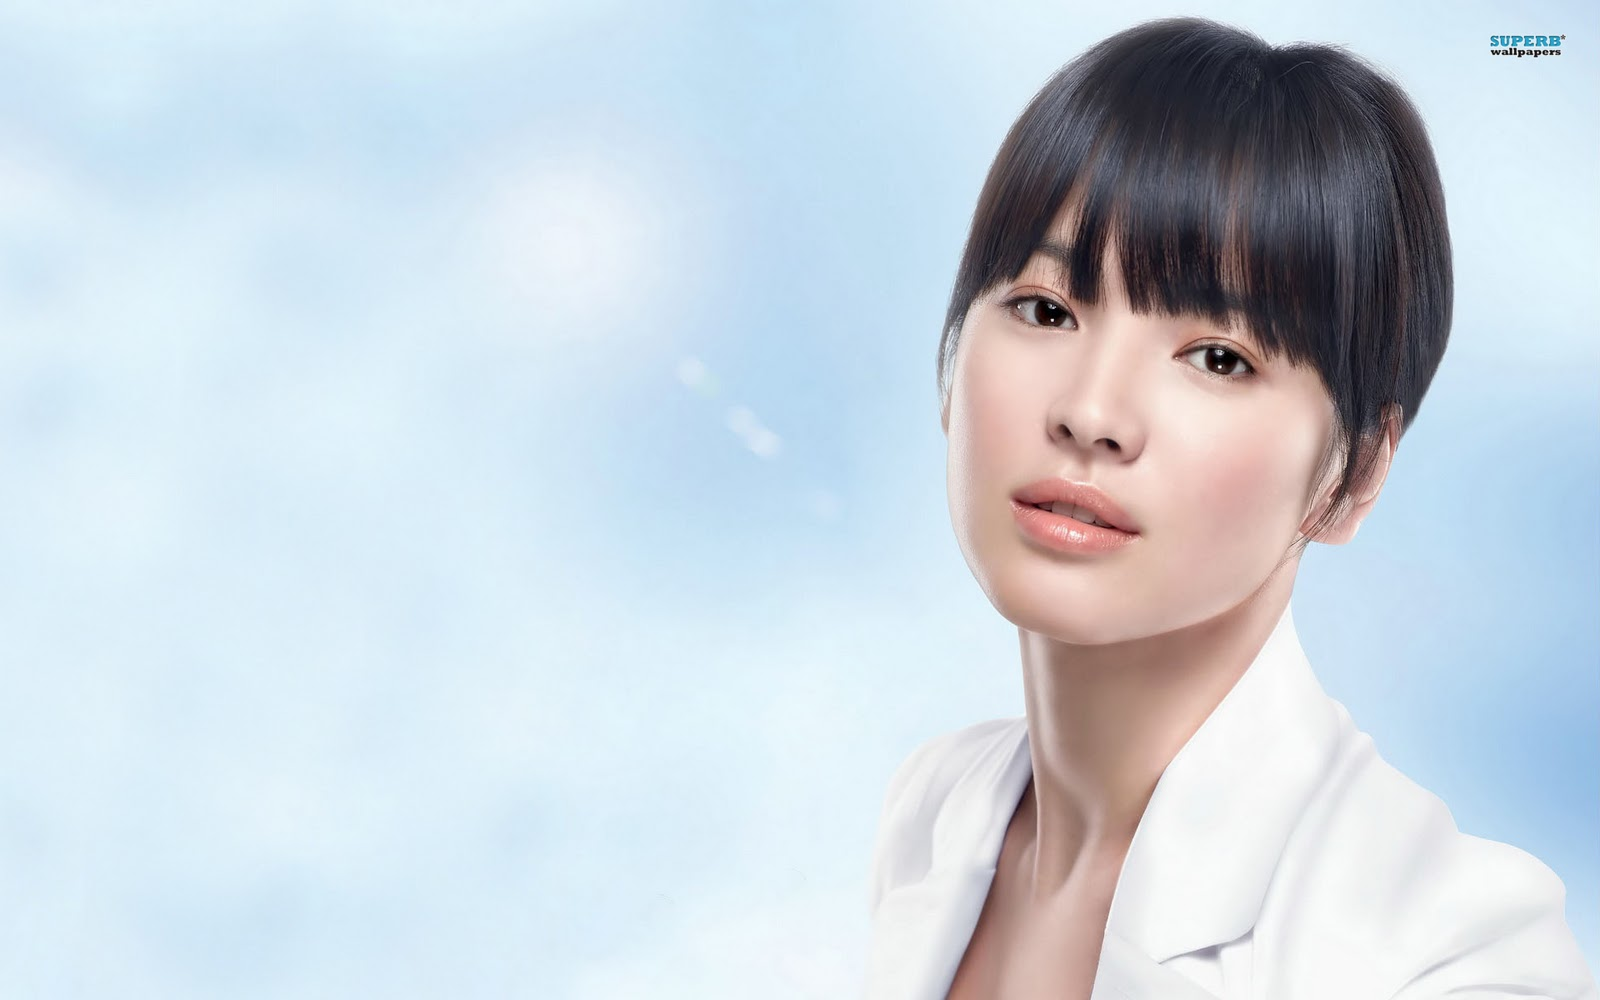 song hye kyo images - photo #41